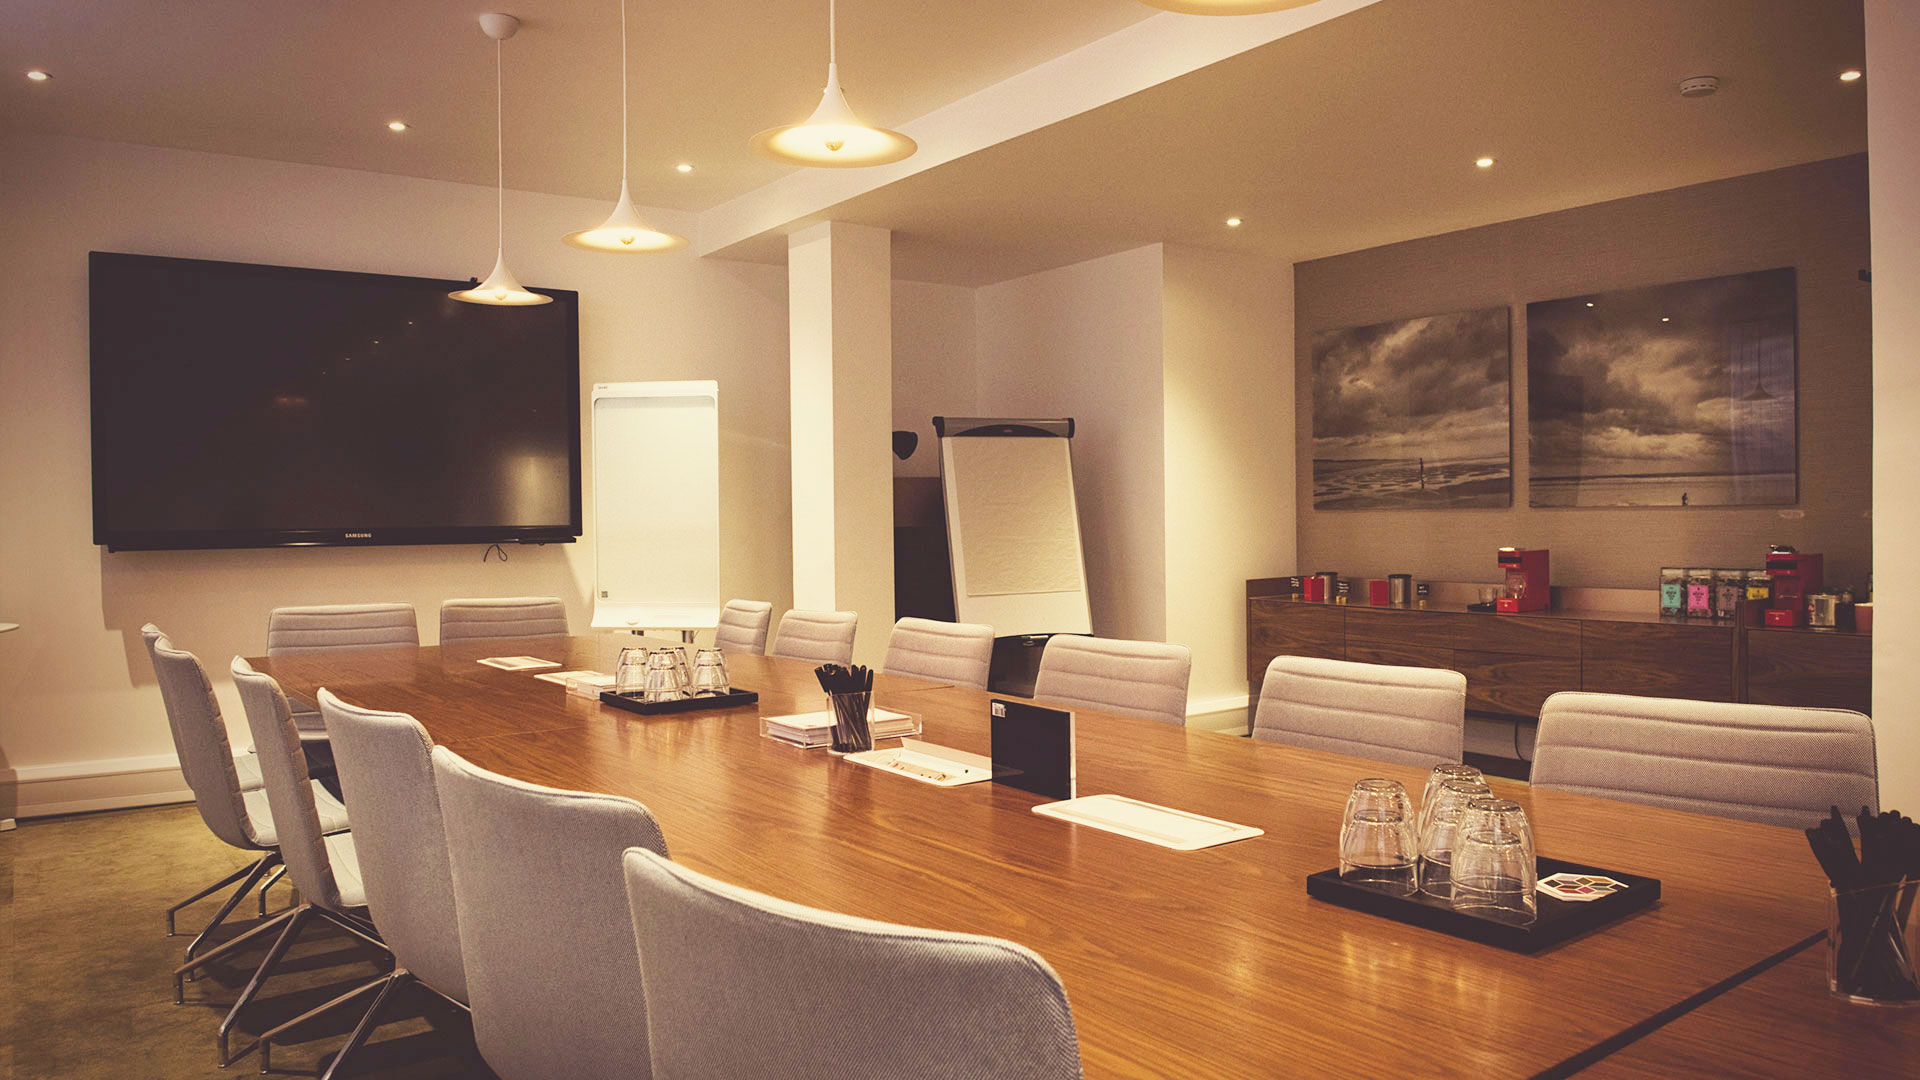 St Pancras Meeting Rooms - Boardroom